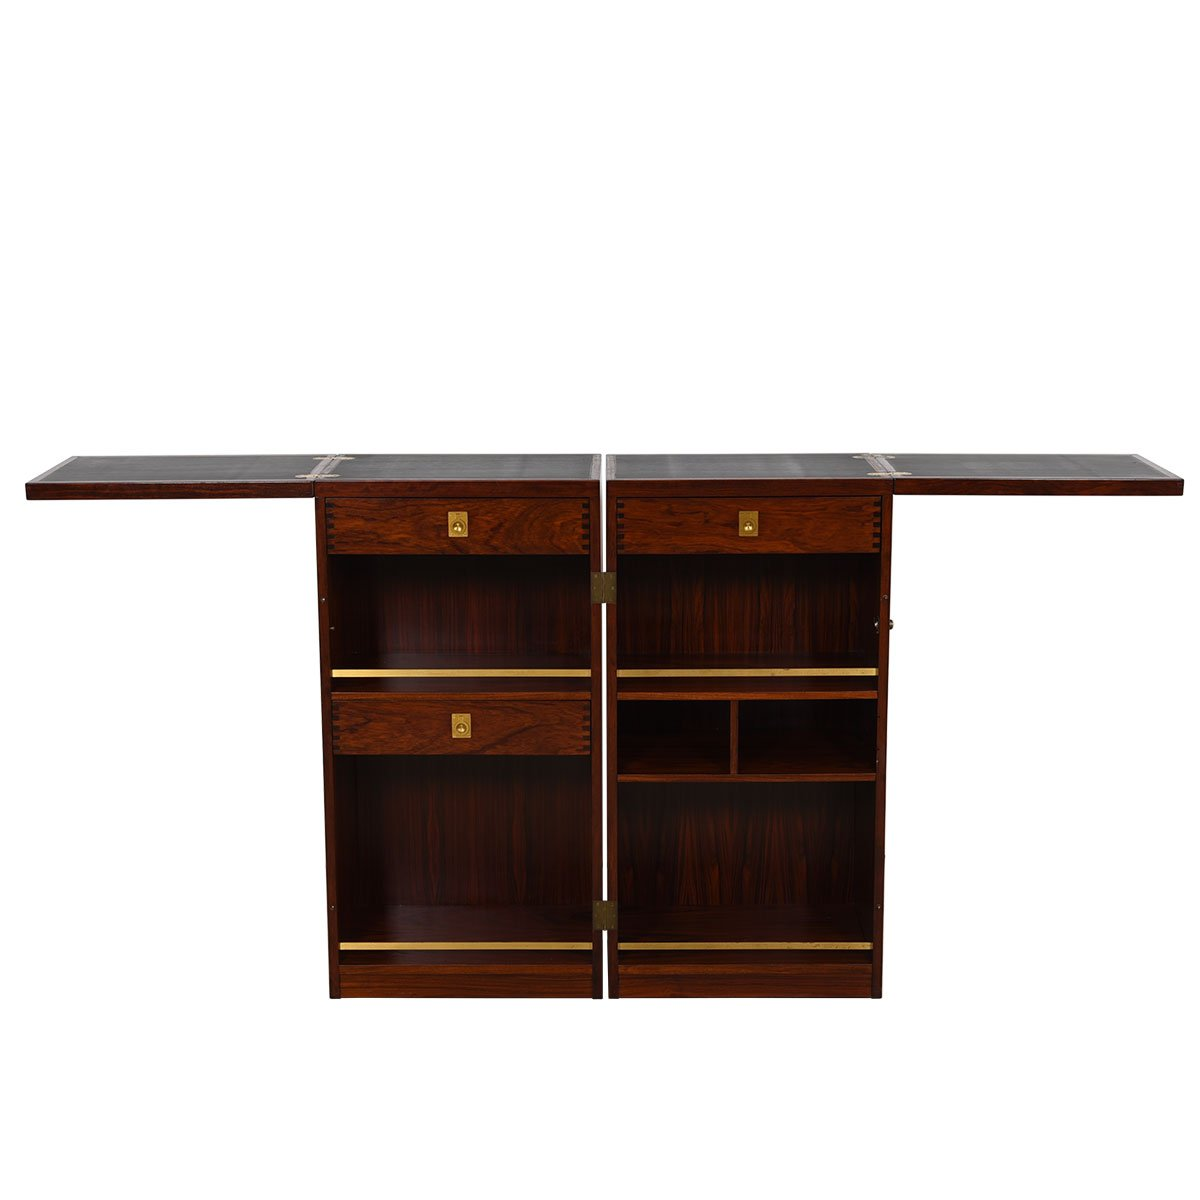 Rosewood Expanding 'Book Bar' / Storage Cabinet by Dyrlund